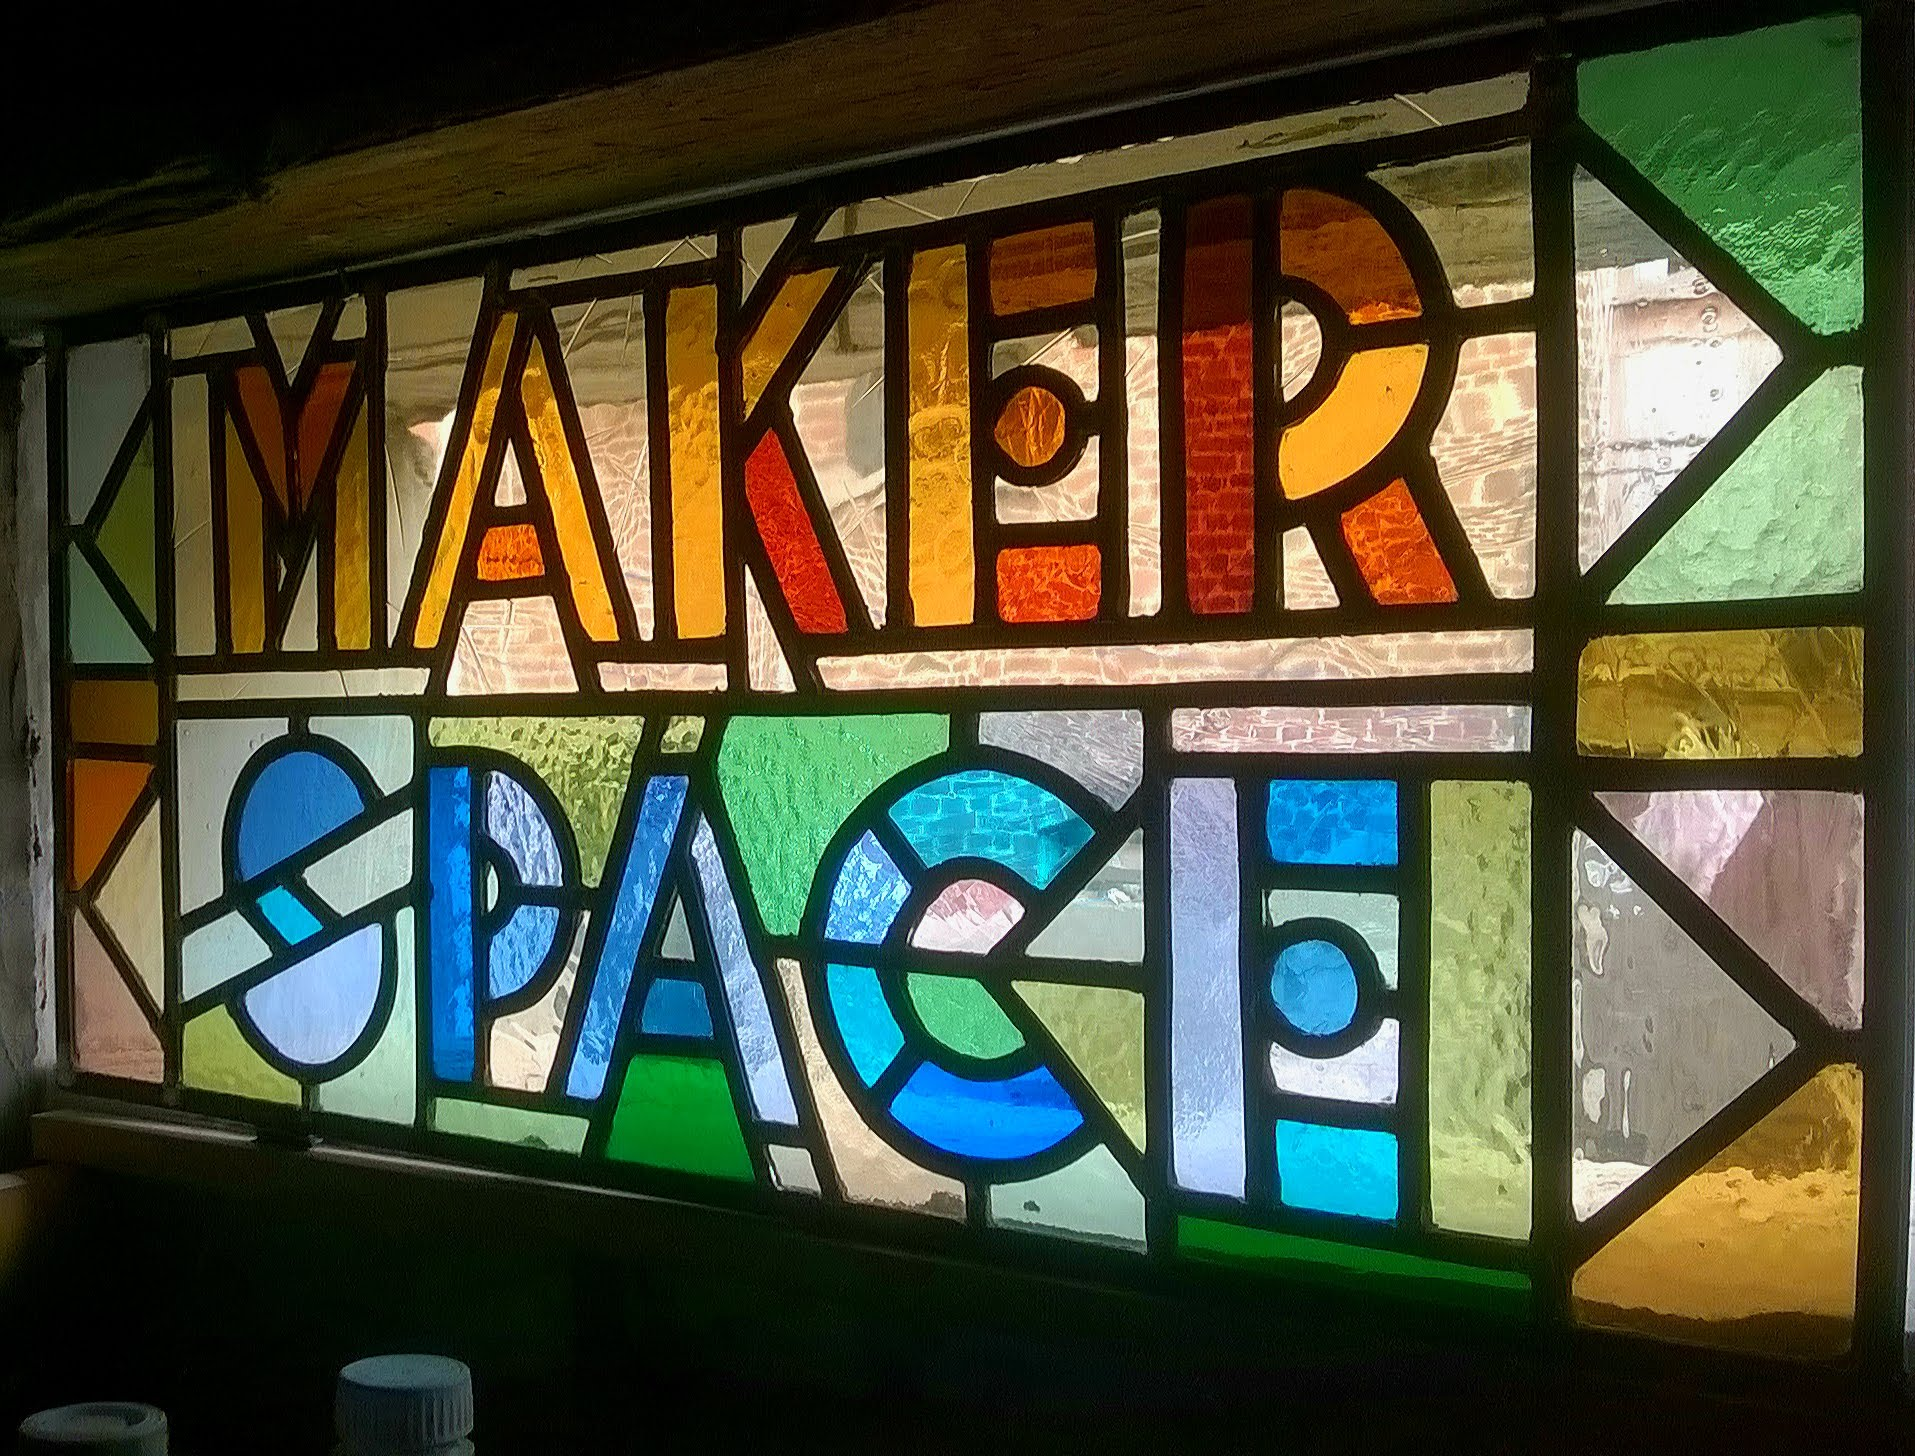 Makerspace glasraam glas-in-lood upcycling